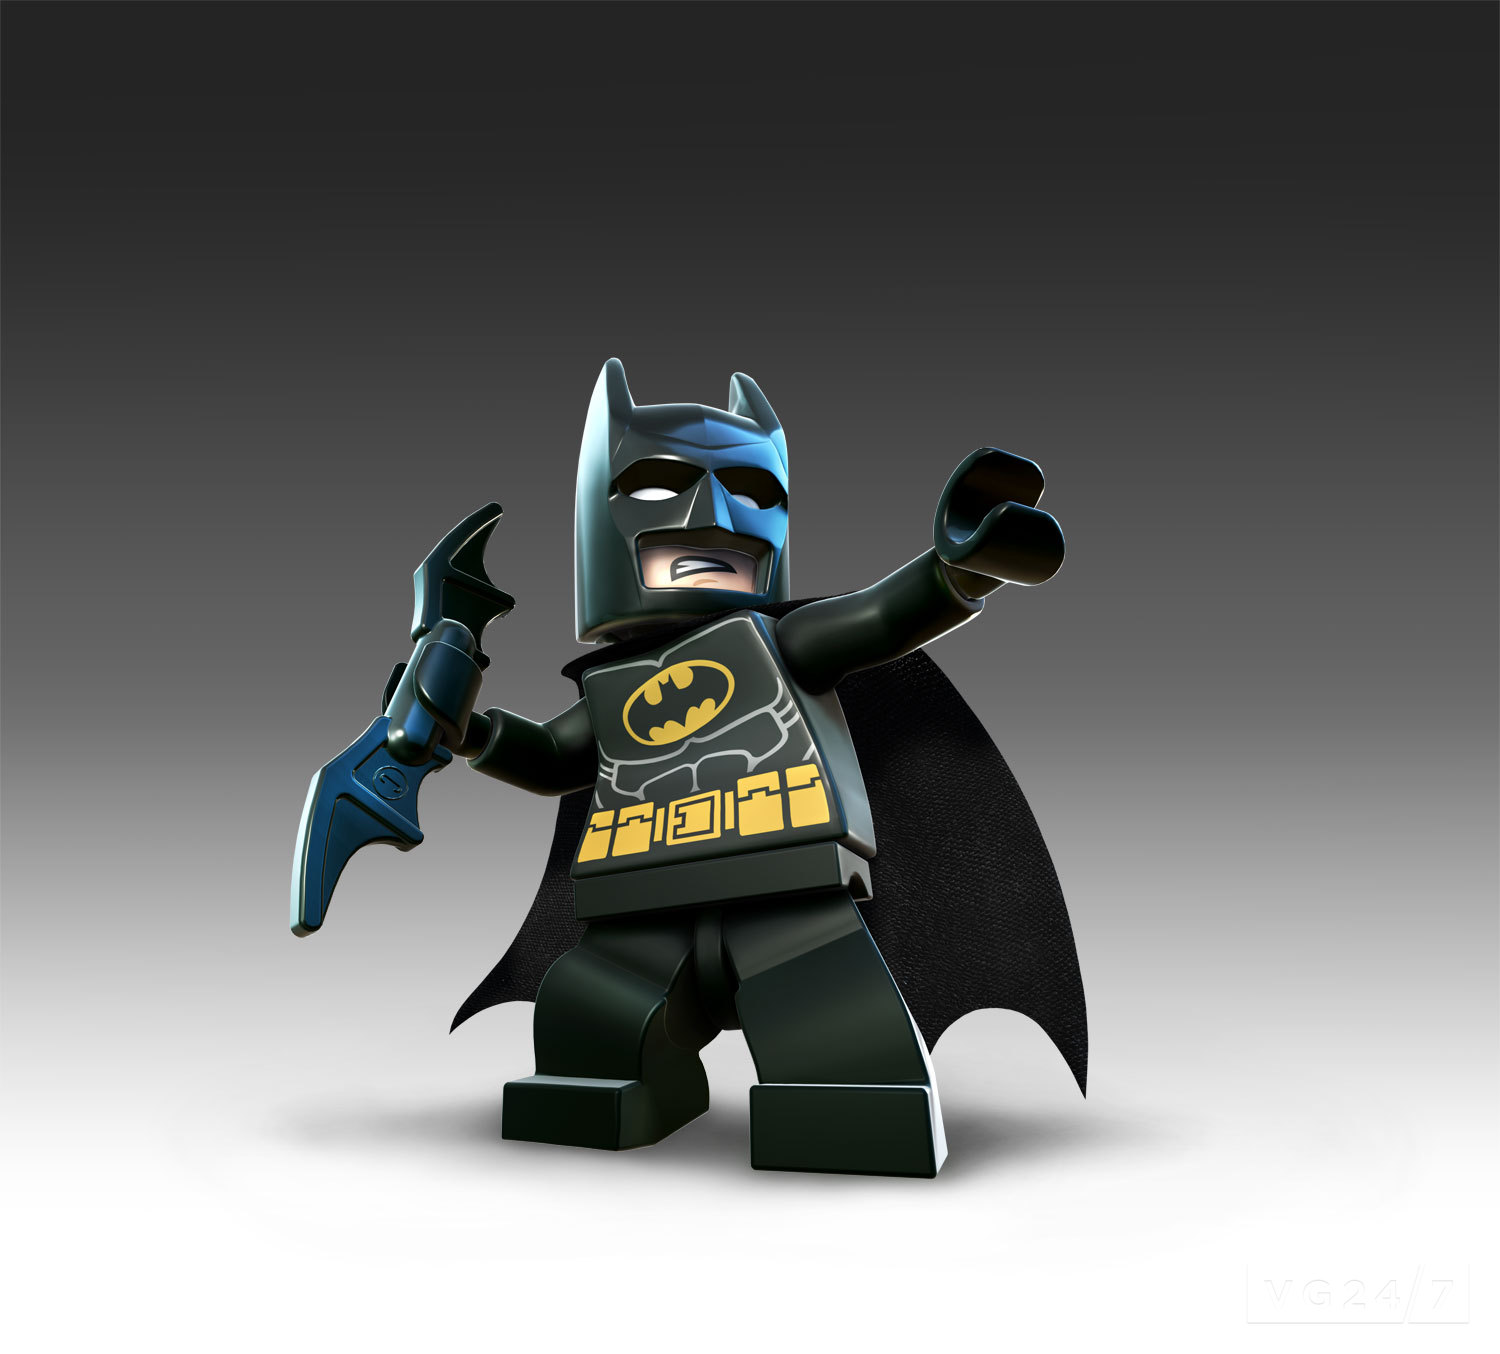 LEGO Batman 2: DC Super Heroes High Quality Background on Wallpapers Vista